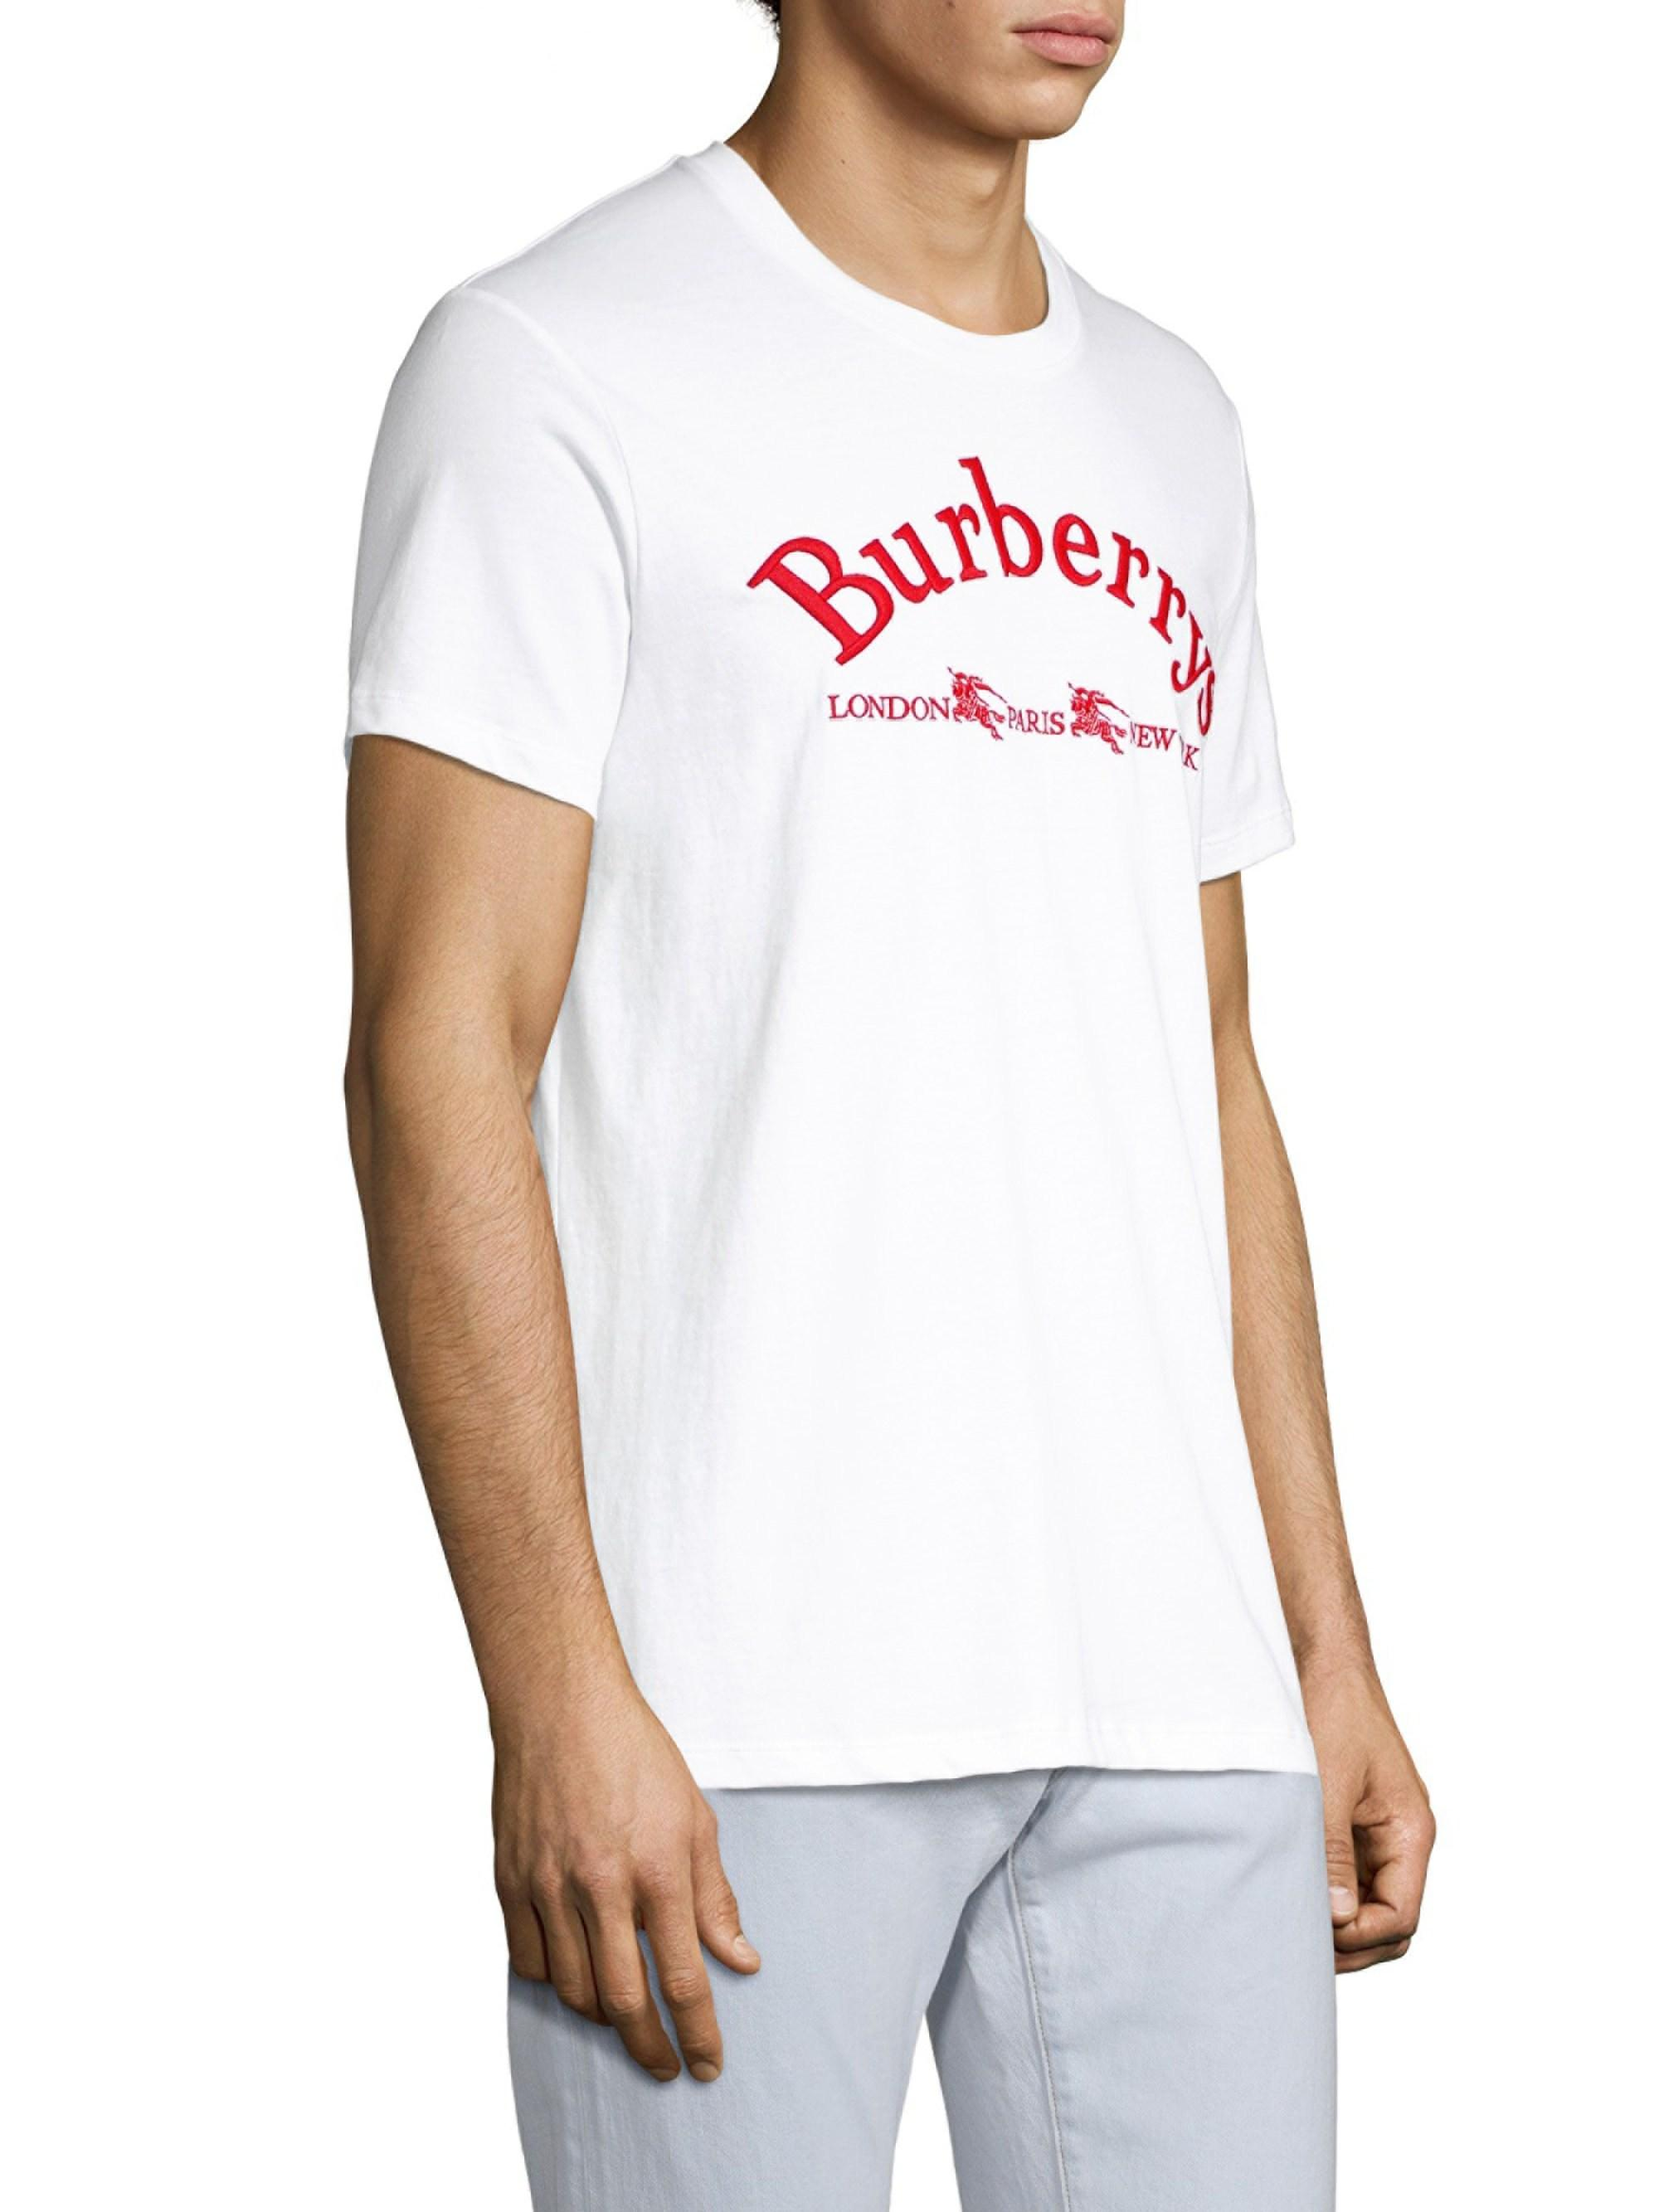 Lyst - Burberry Archive Logo Cotton T-shirt in White for Men - Save 7% 15dd45c2572d7